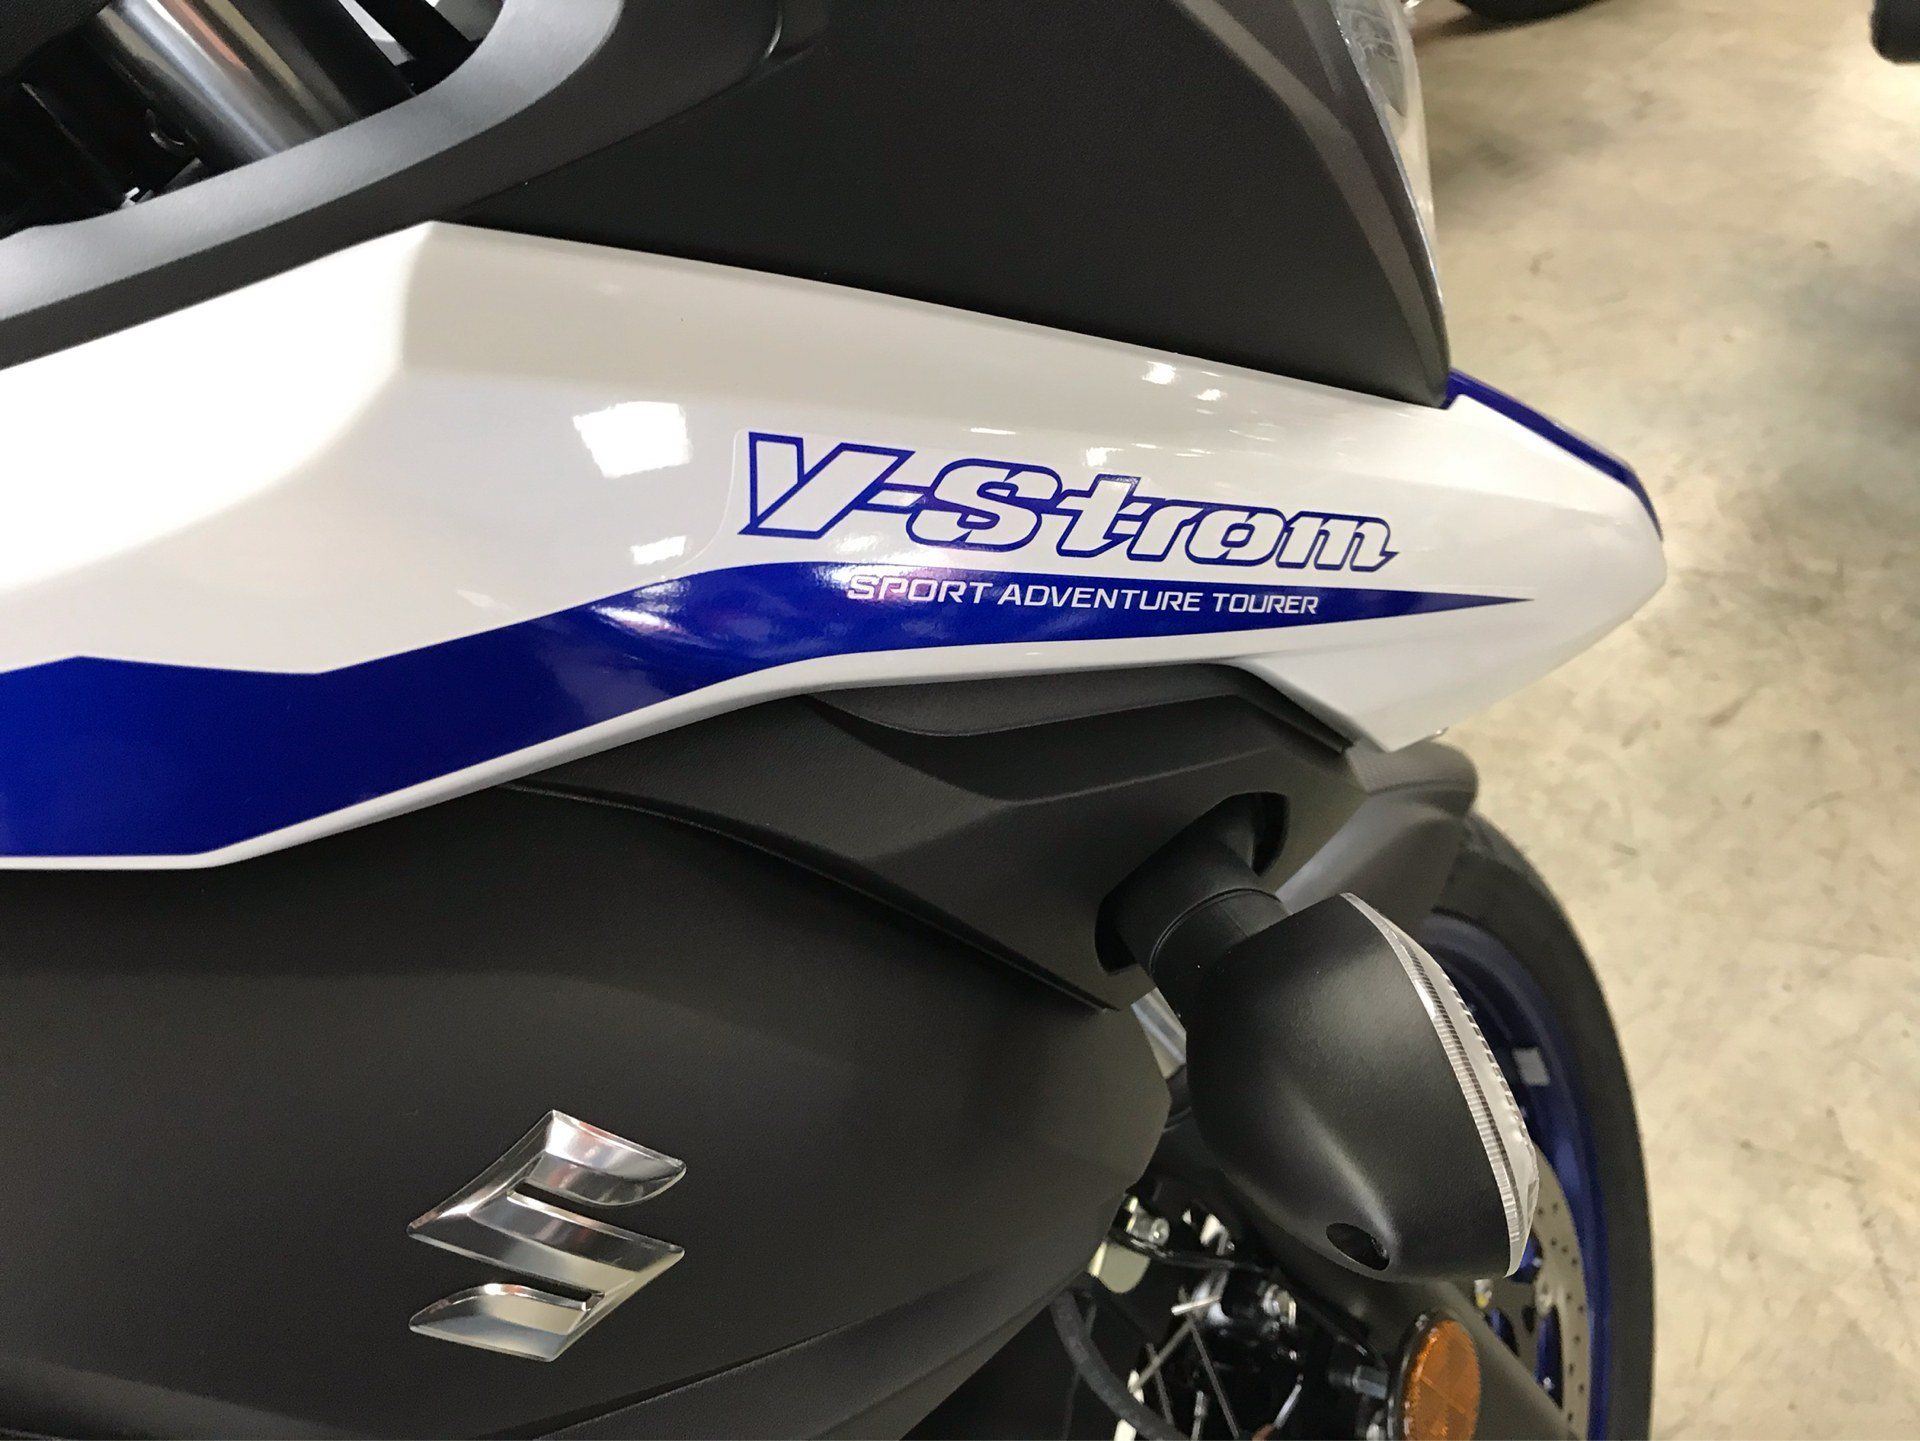 2019 Suzuki V-Strom 650XT in Sanford, North Carolina - Photo 9